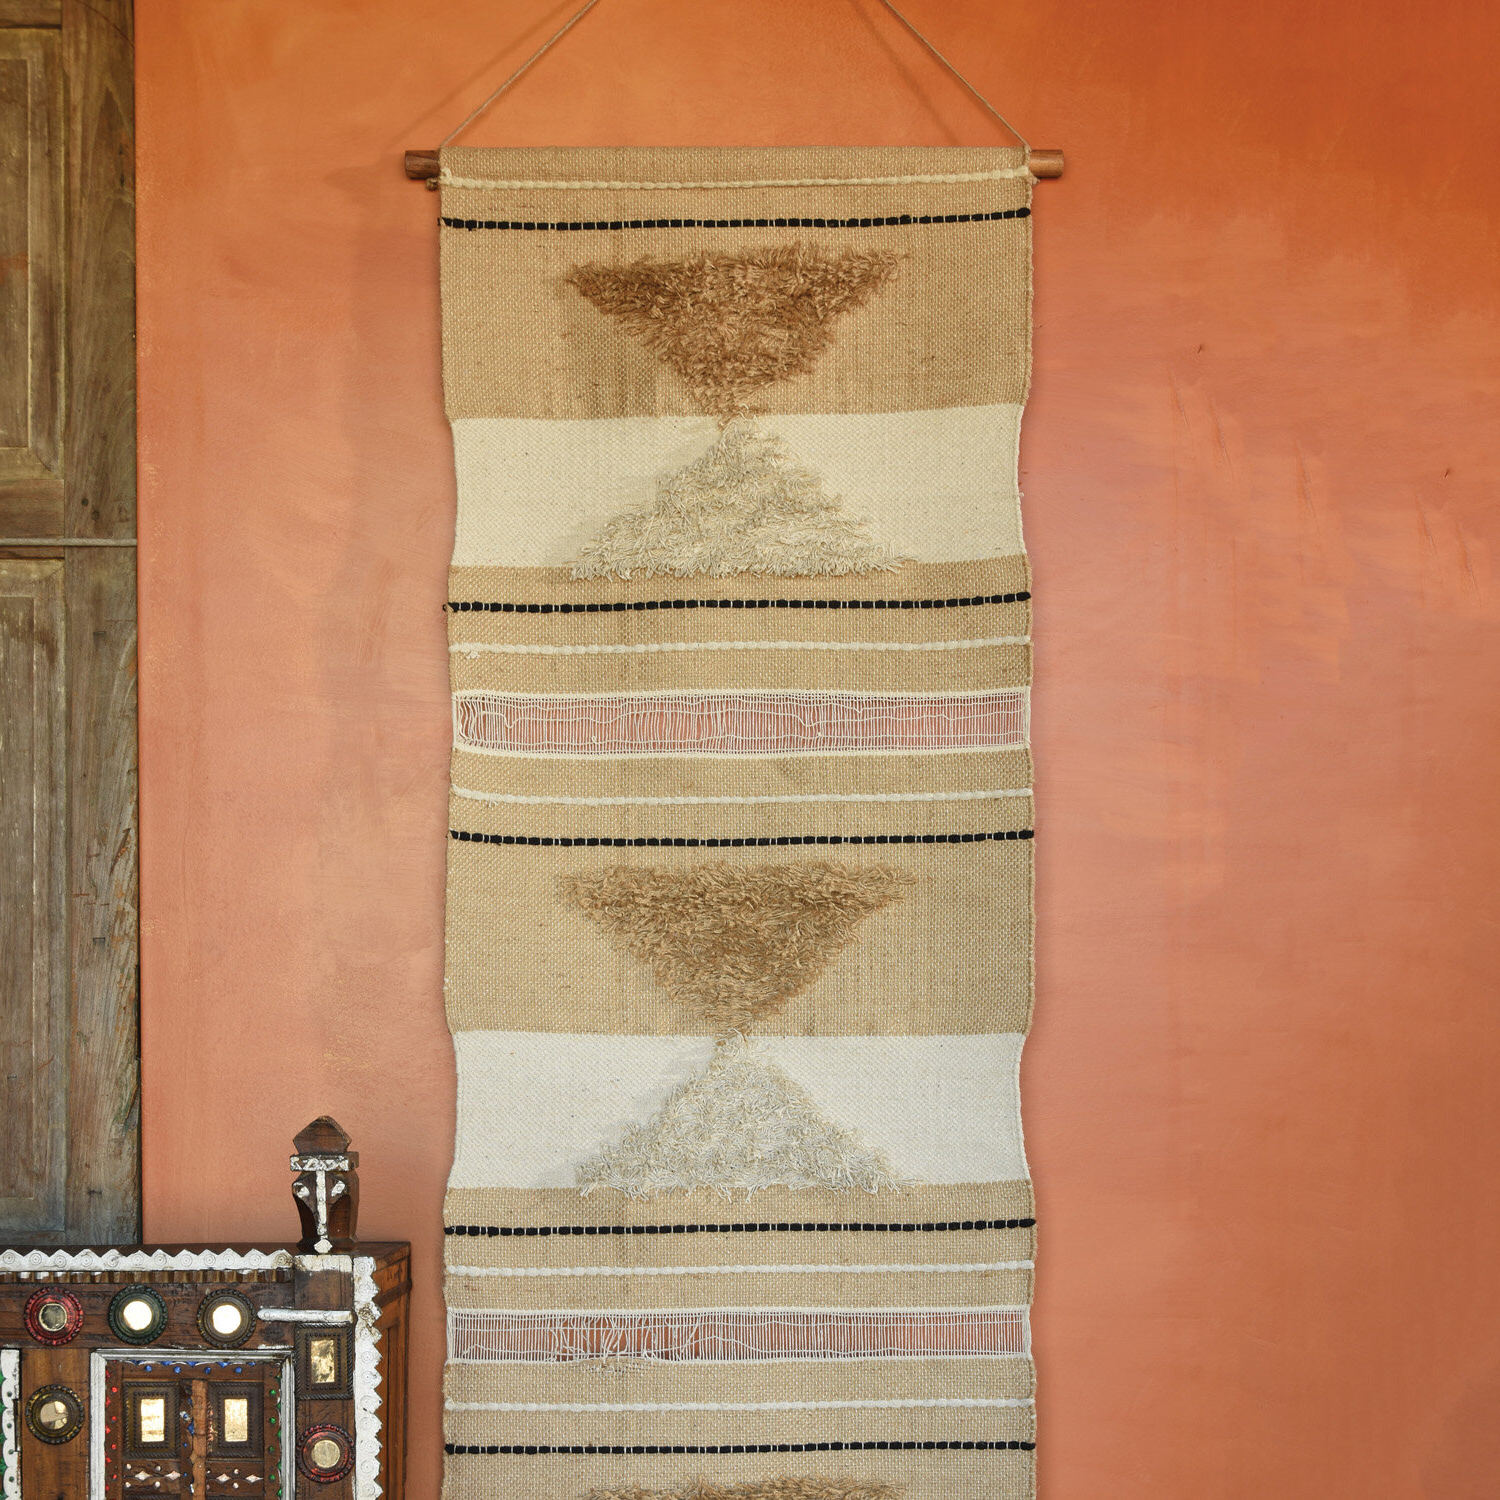 Cotton And Jute Wall Hanging In Latest Blended Fabric Mucha Autumn European Wall Hangings (View 17 of 20)